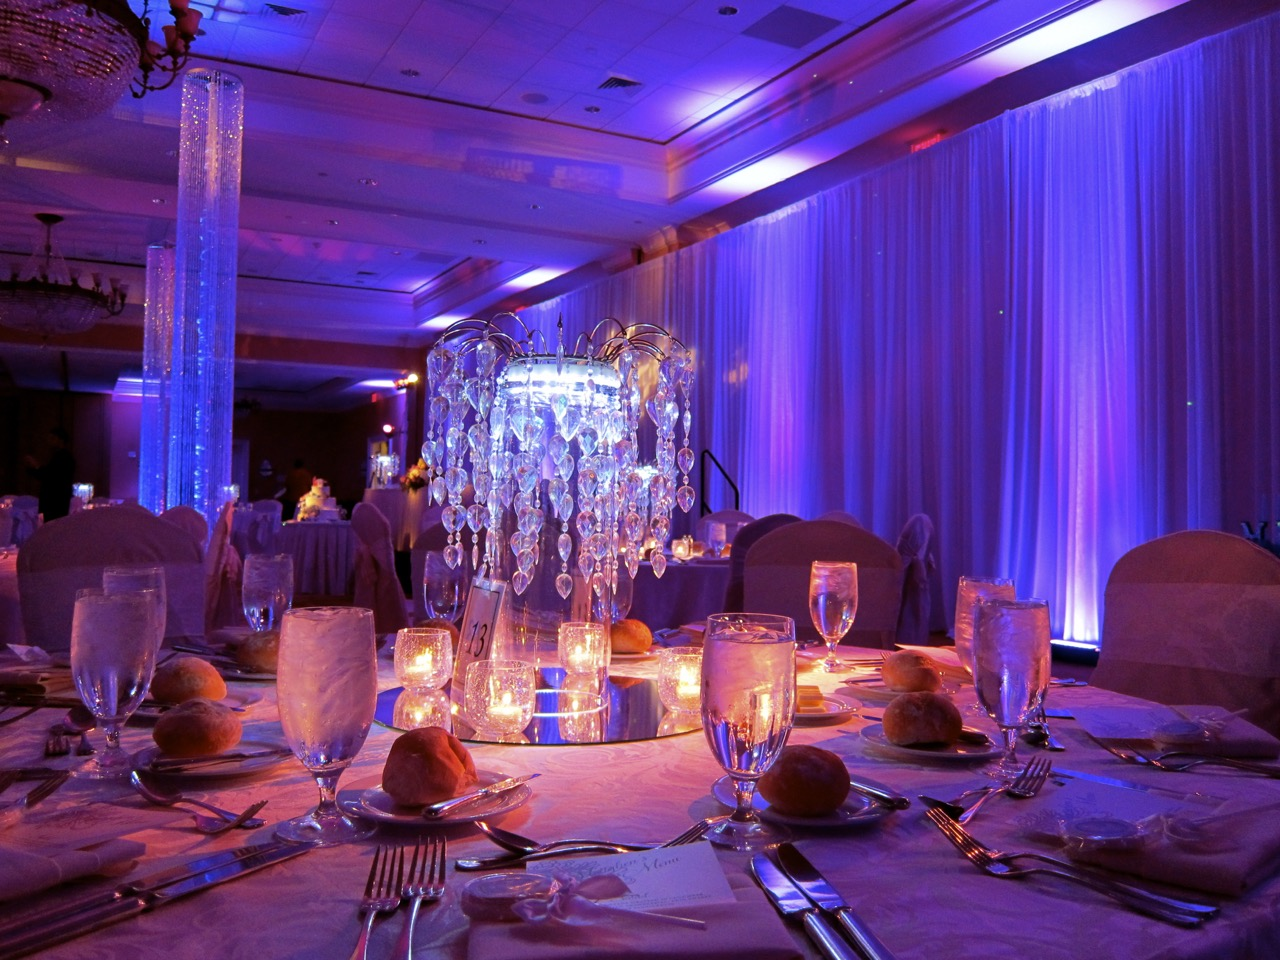 Eggsotic Events Masquerade Theme Decor and Lighting 11.jpg